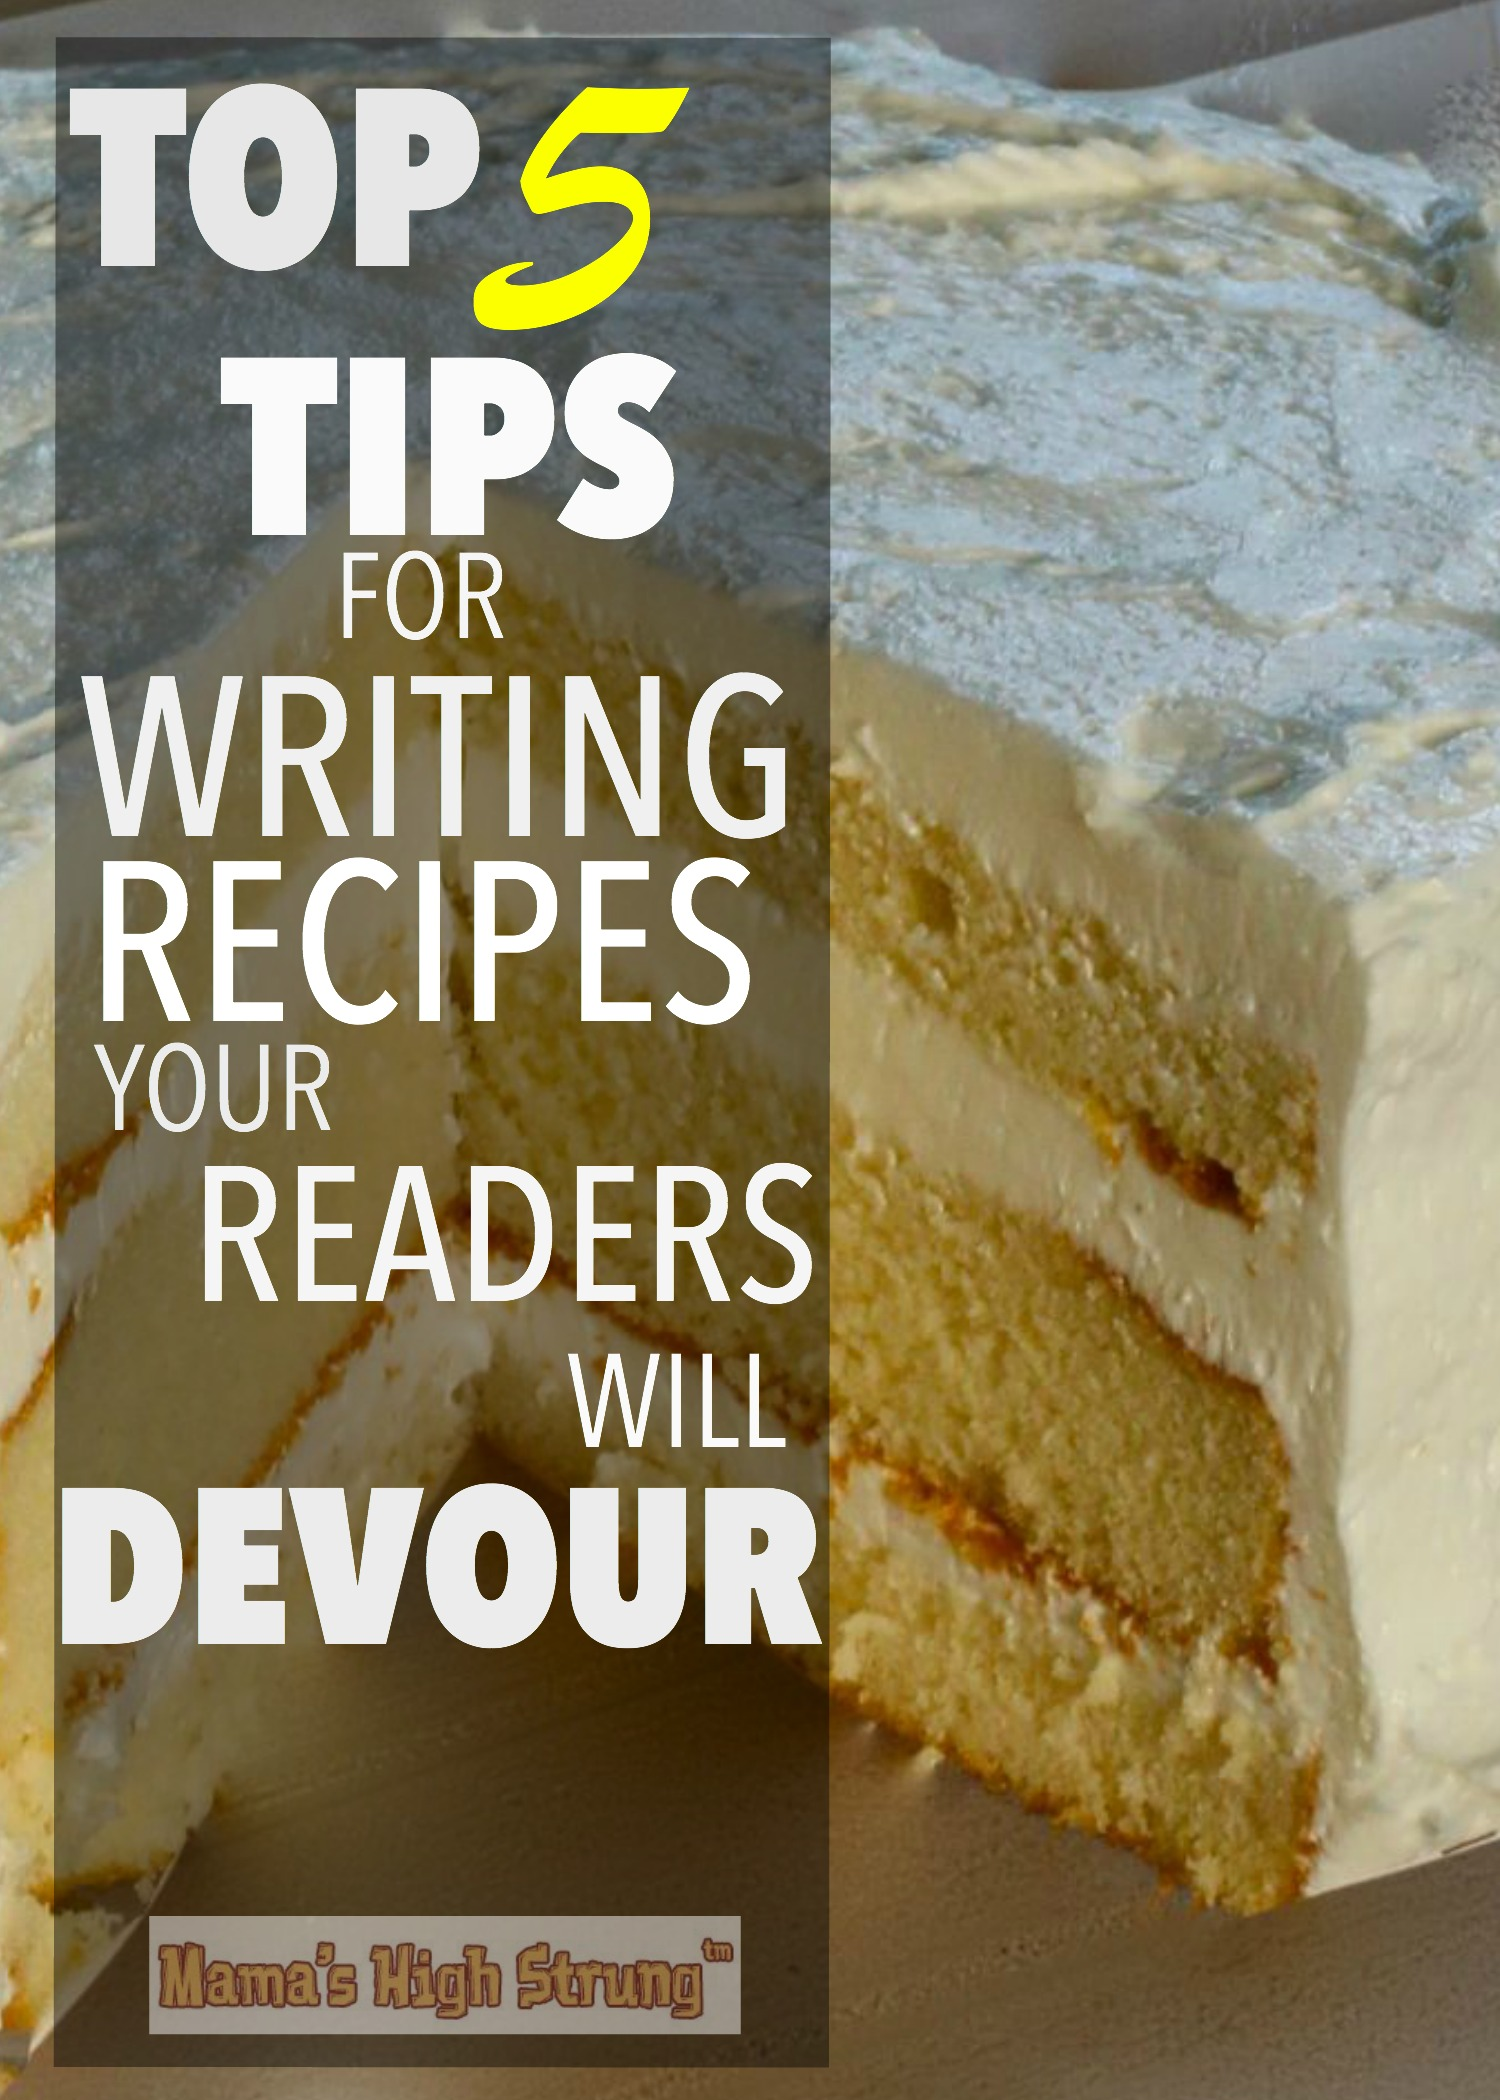 Tips for Writing Recipes